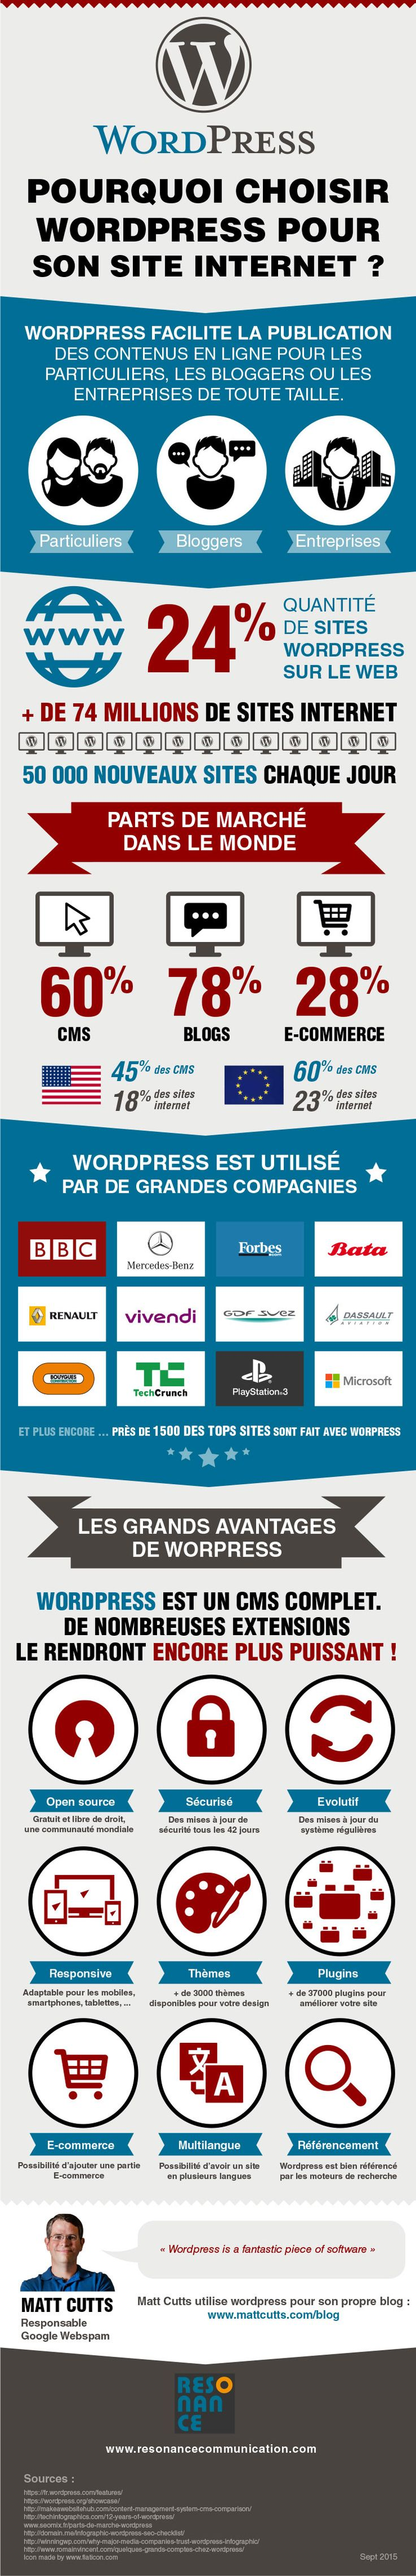 Infographie - Pourquoi choisir WordPress pour son site ? - - Article du blog de www.resonancecommunication.com agence web à Carcassonne